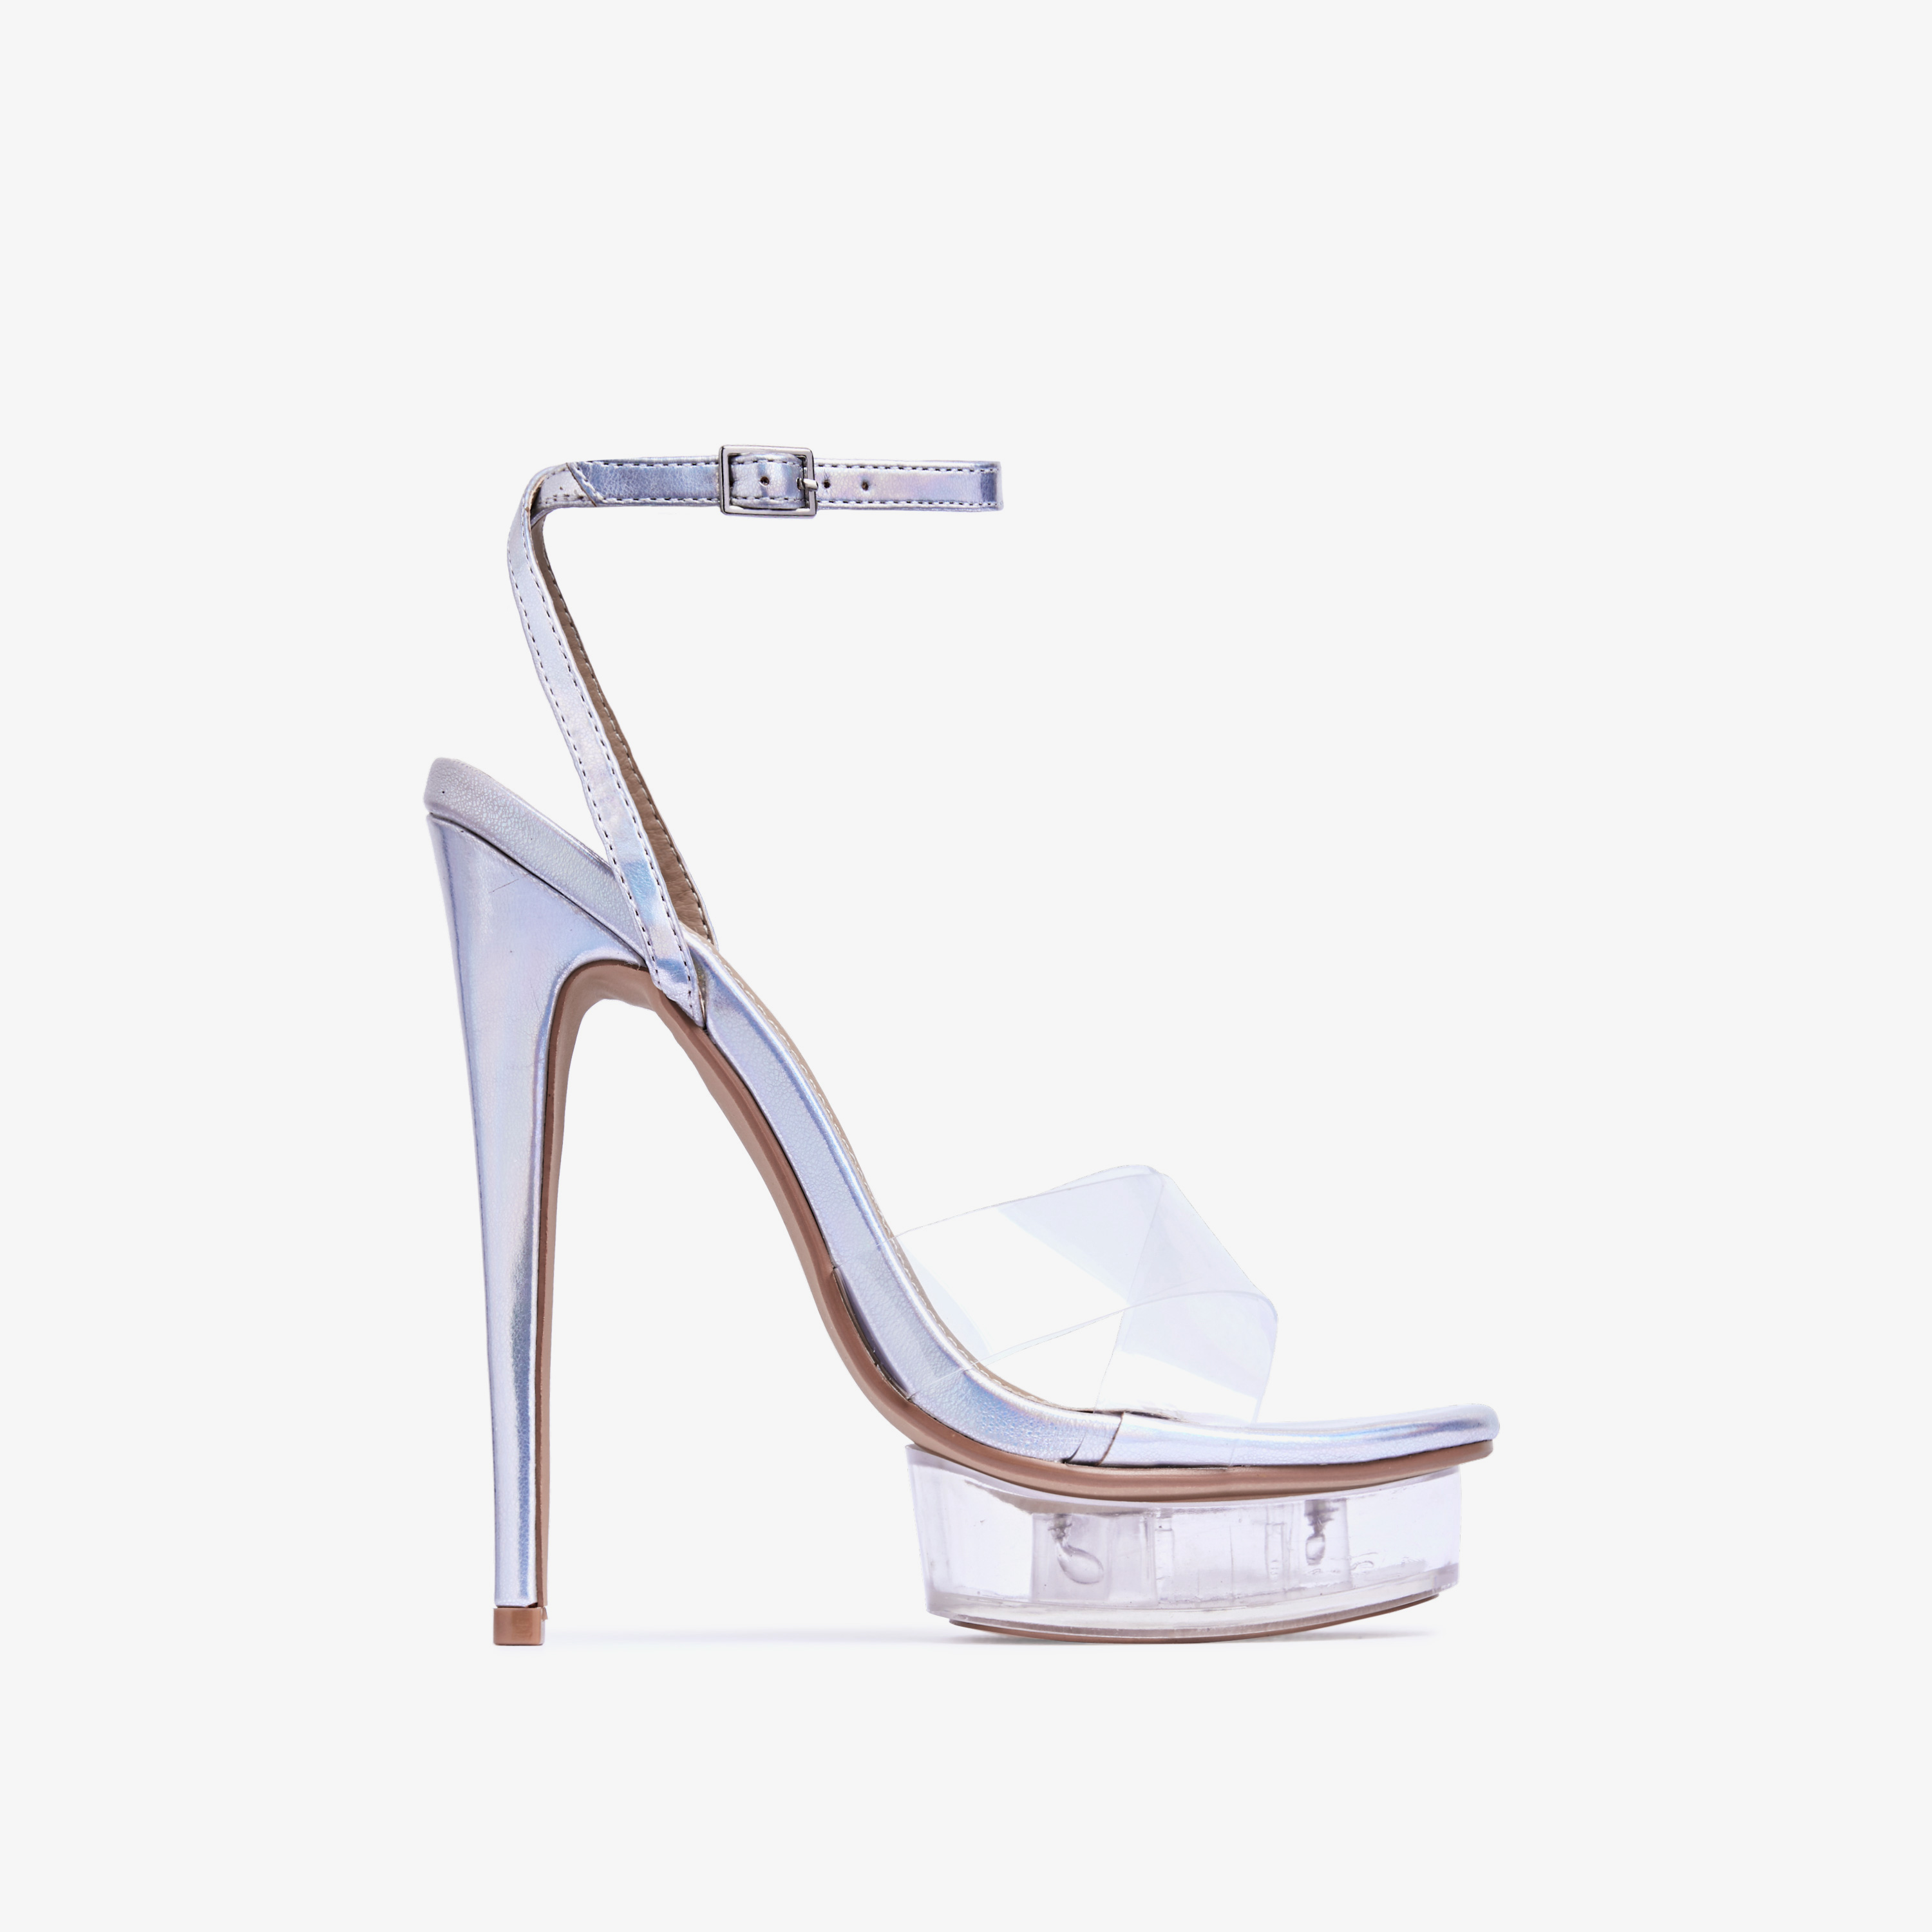 Smoking Barely There Perspex Platform Heel In Silver Holographic Faux Leather